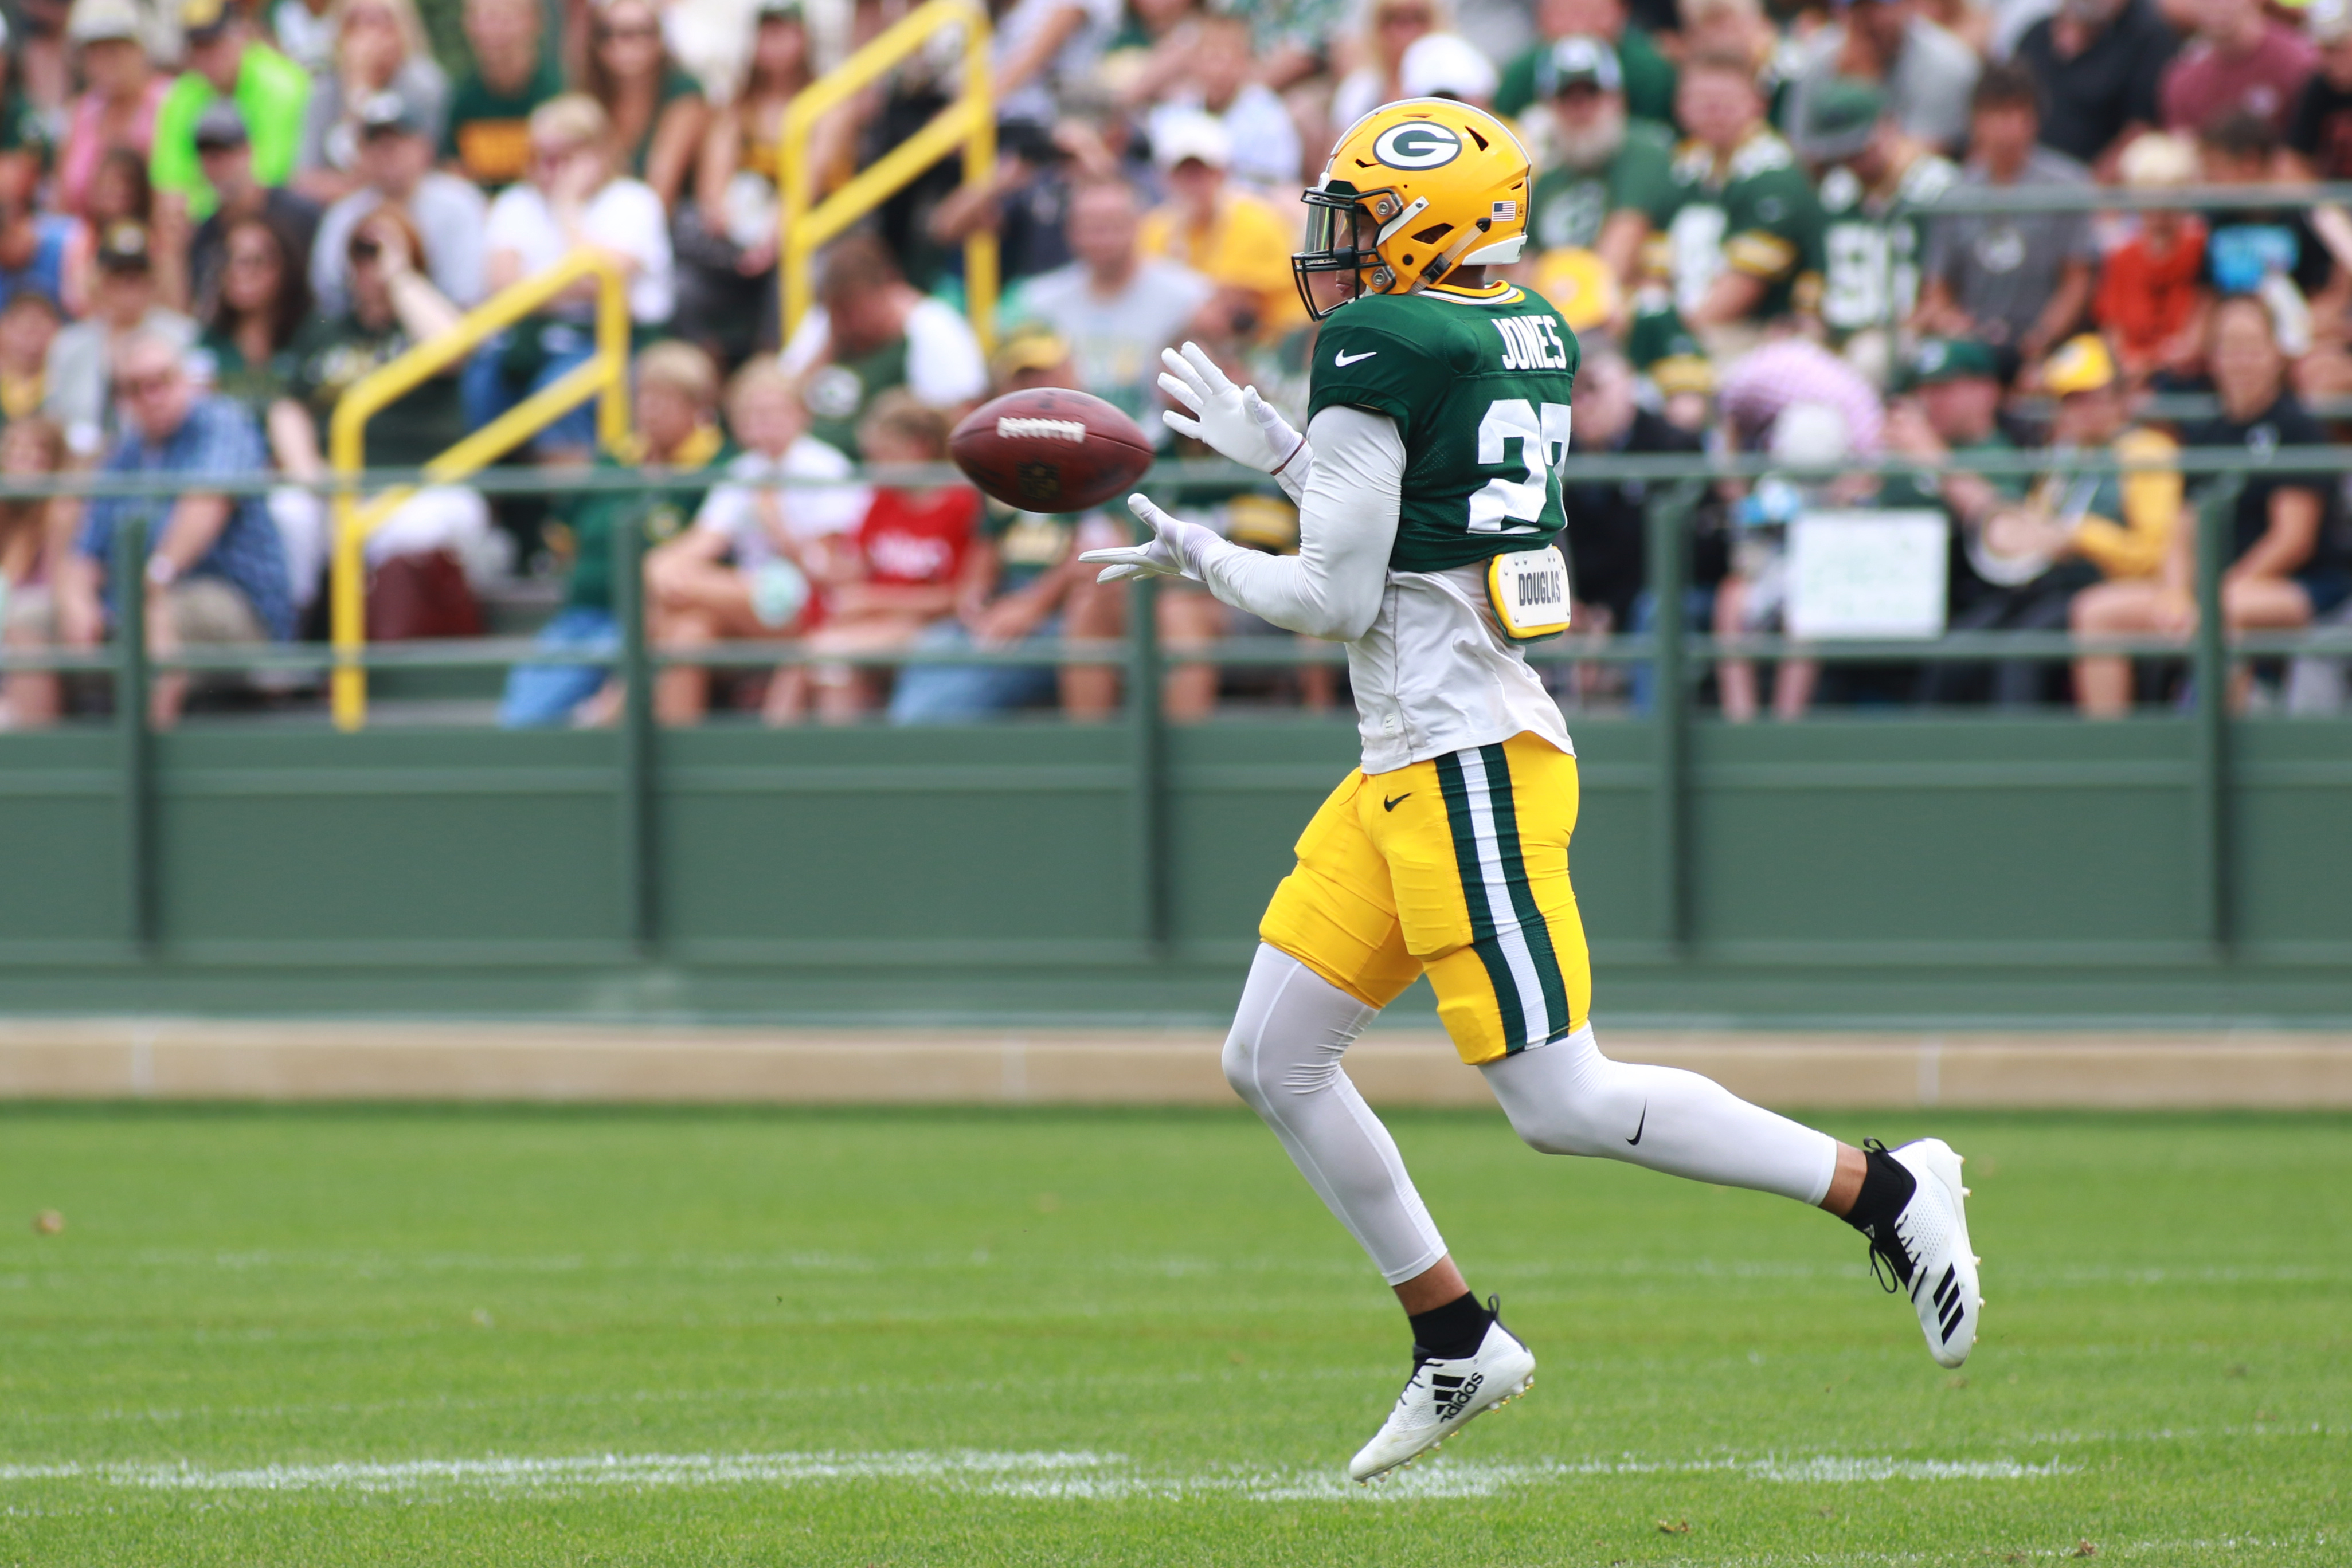 NFL: AUG 07 Packers Training Camp